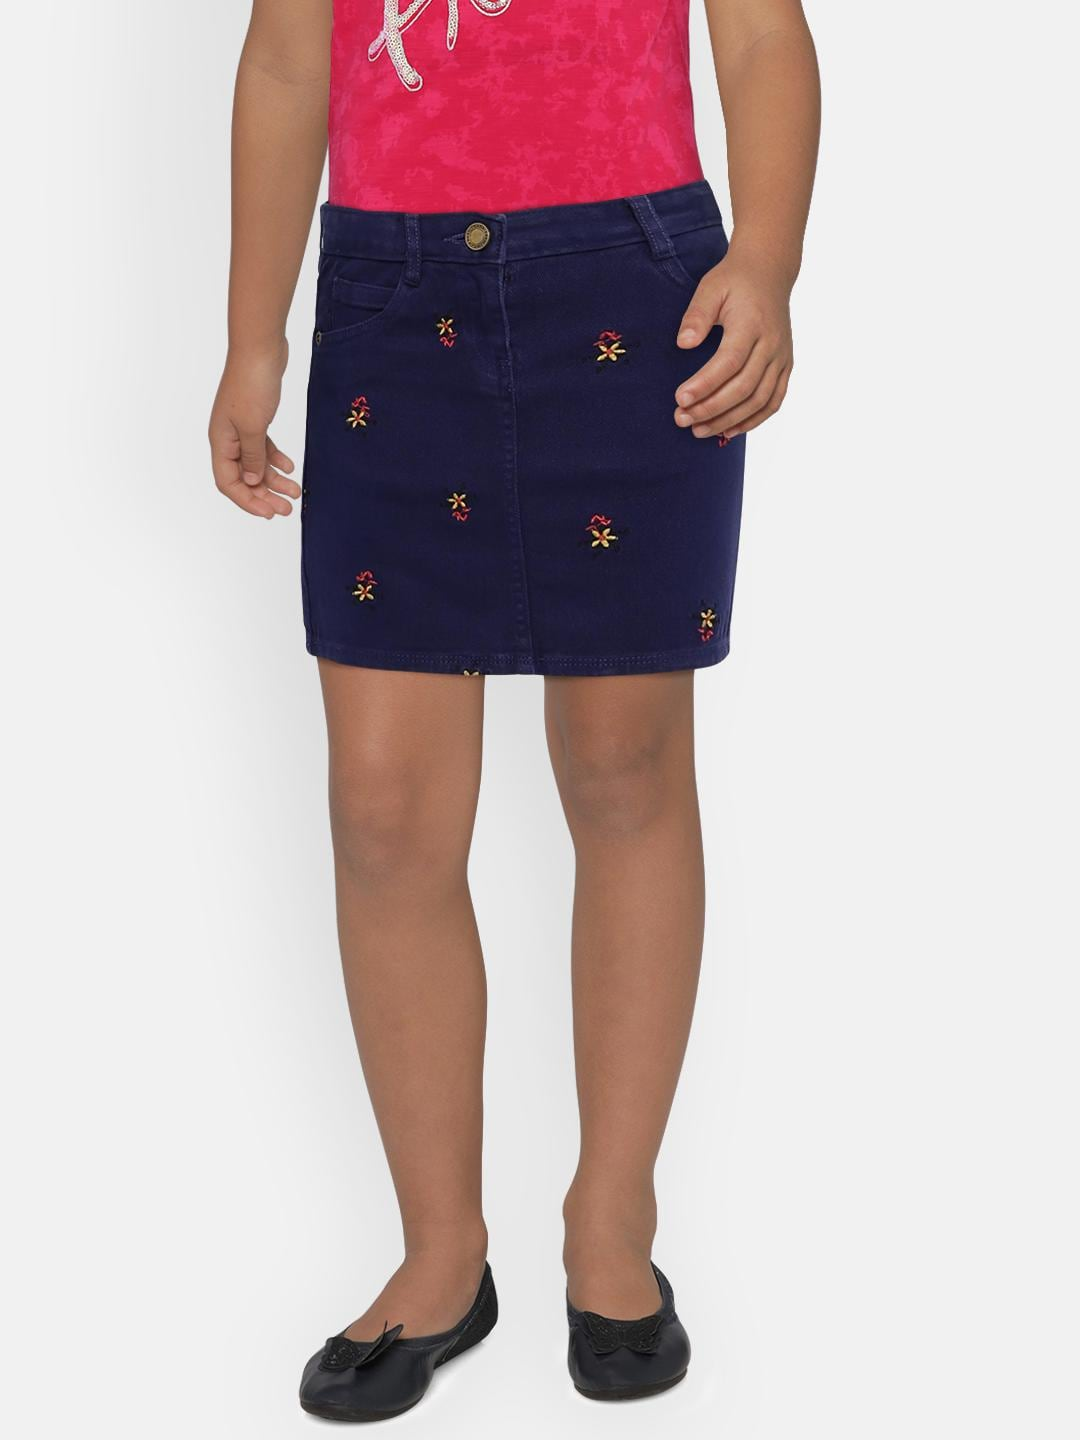 863935729a Girl s Skirts - Buy Skirts for Girls Online in India